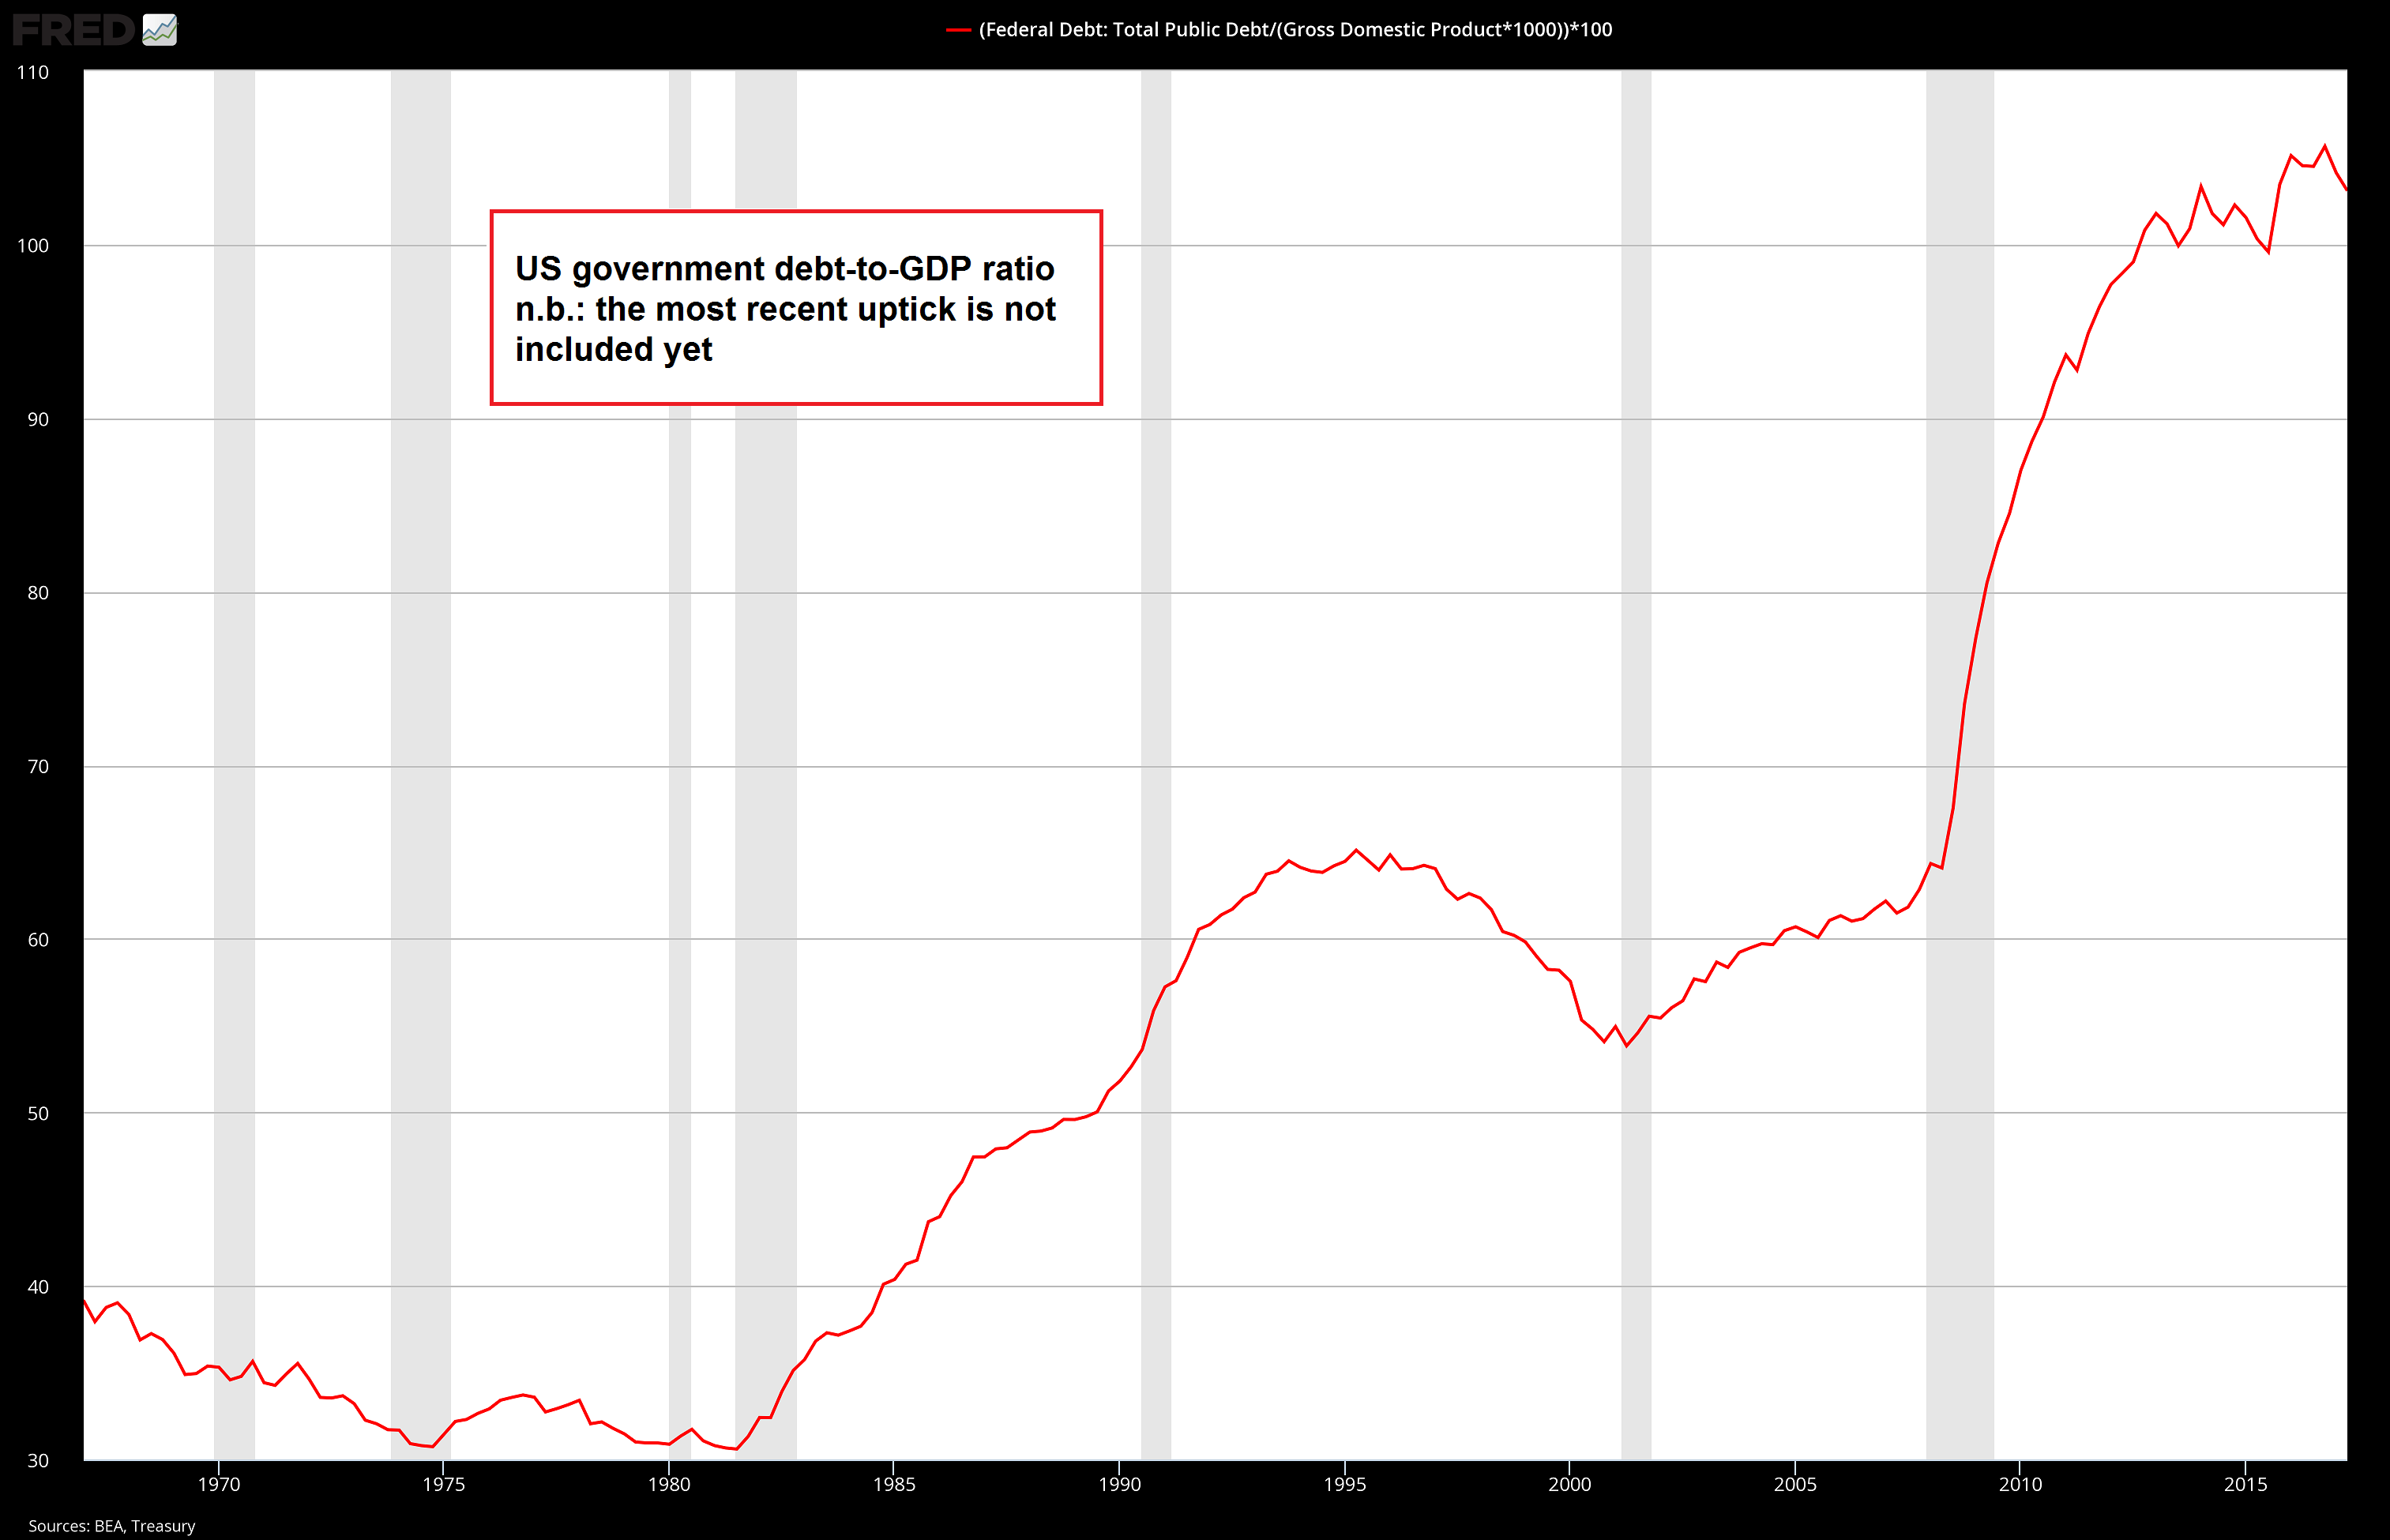 US Debt to GDP Ratio, 1970 - 2015